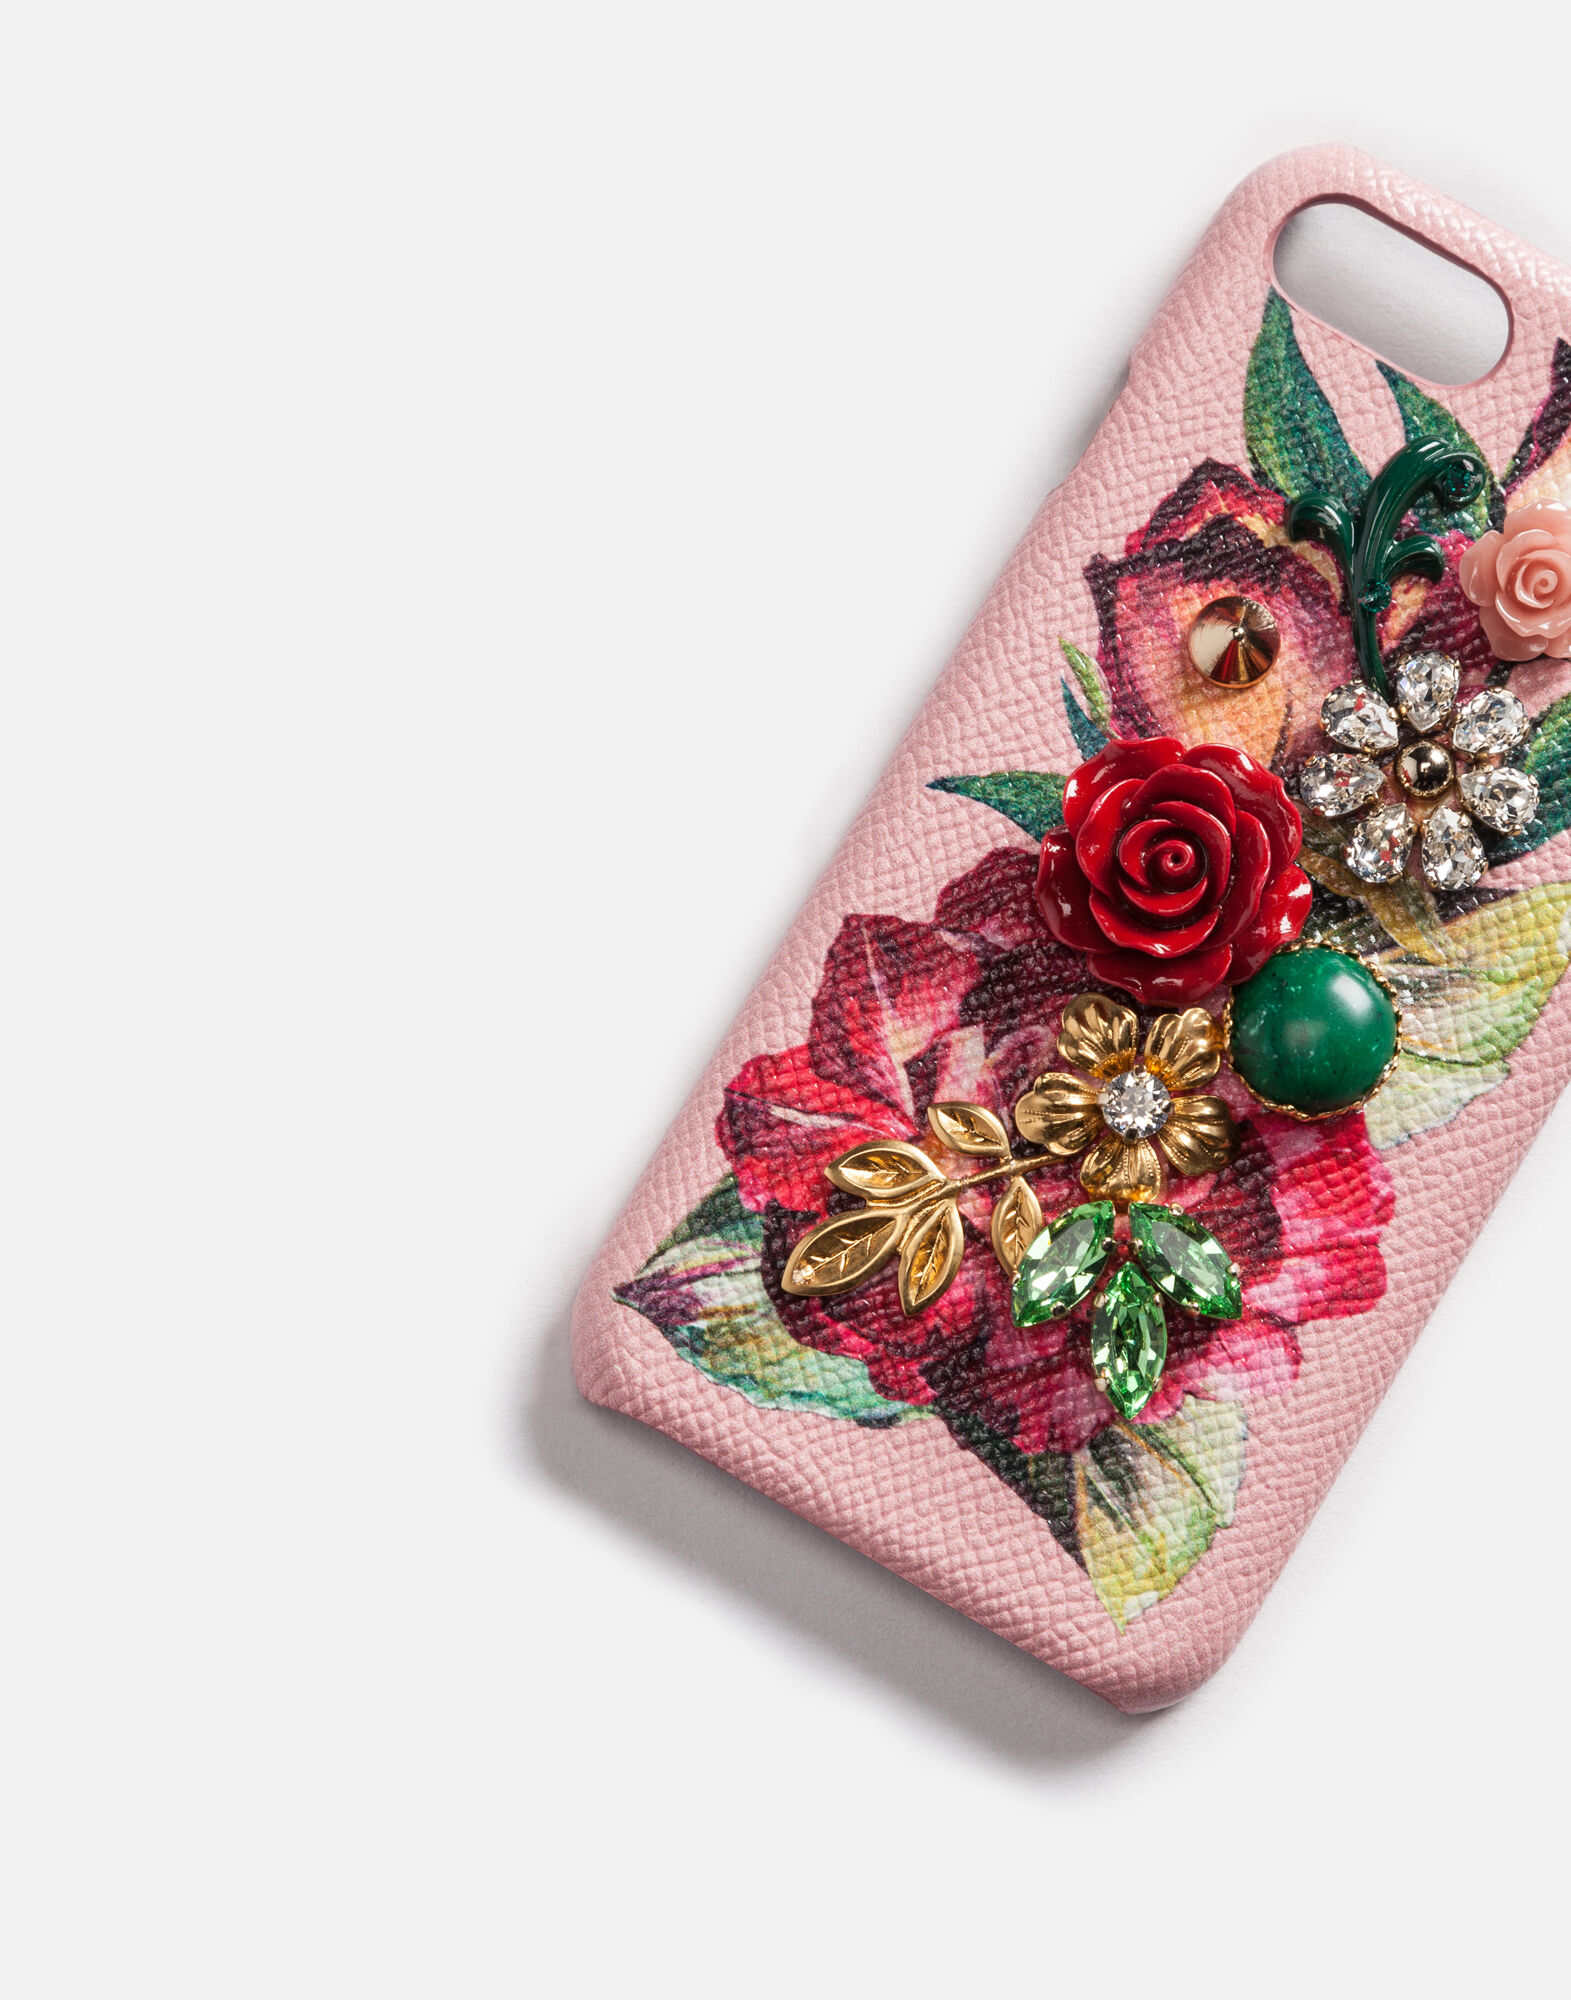 PRINTED LEATHER IPHONE 7 PLUS COVER WITH APPLIQUÉ